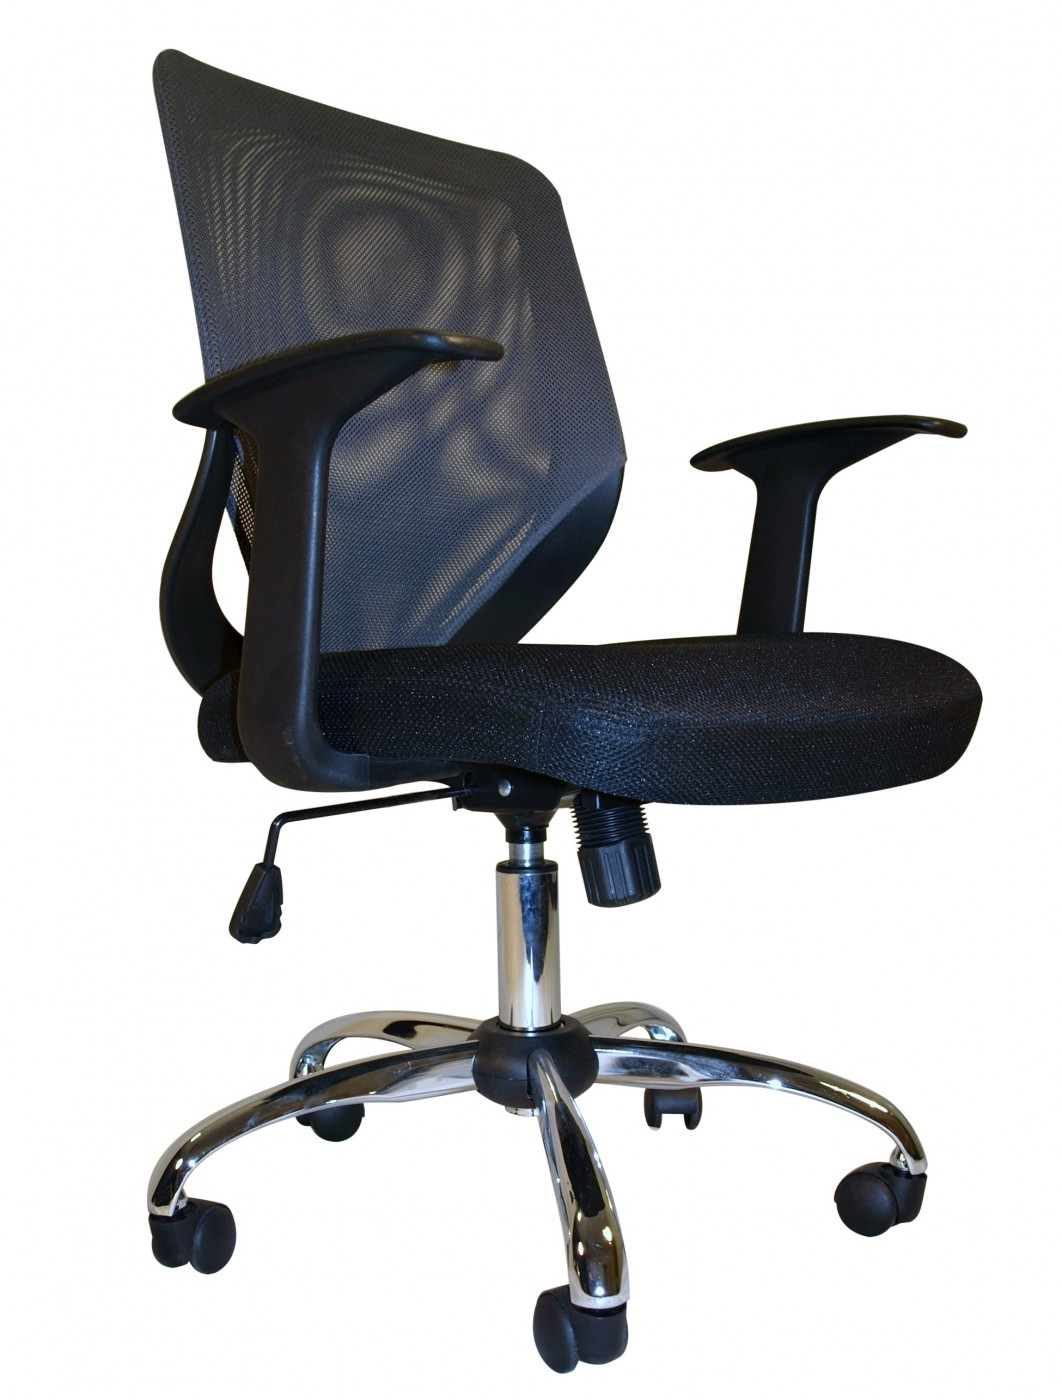 Alphason Atlanta Office Chairs Aoc9201 M Gry 121 Office